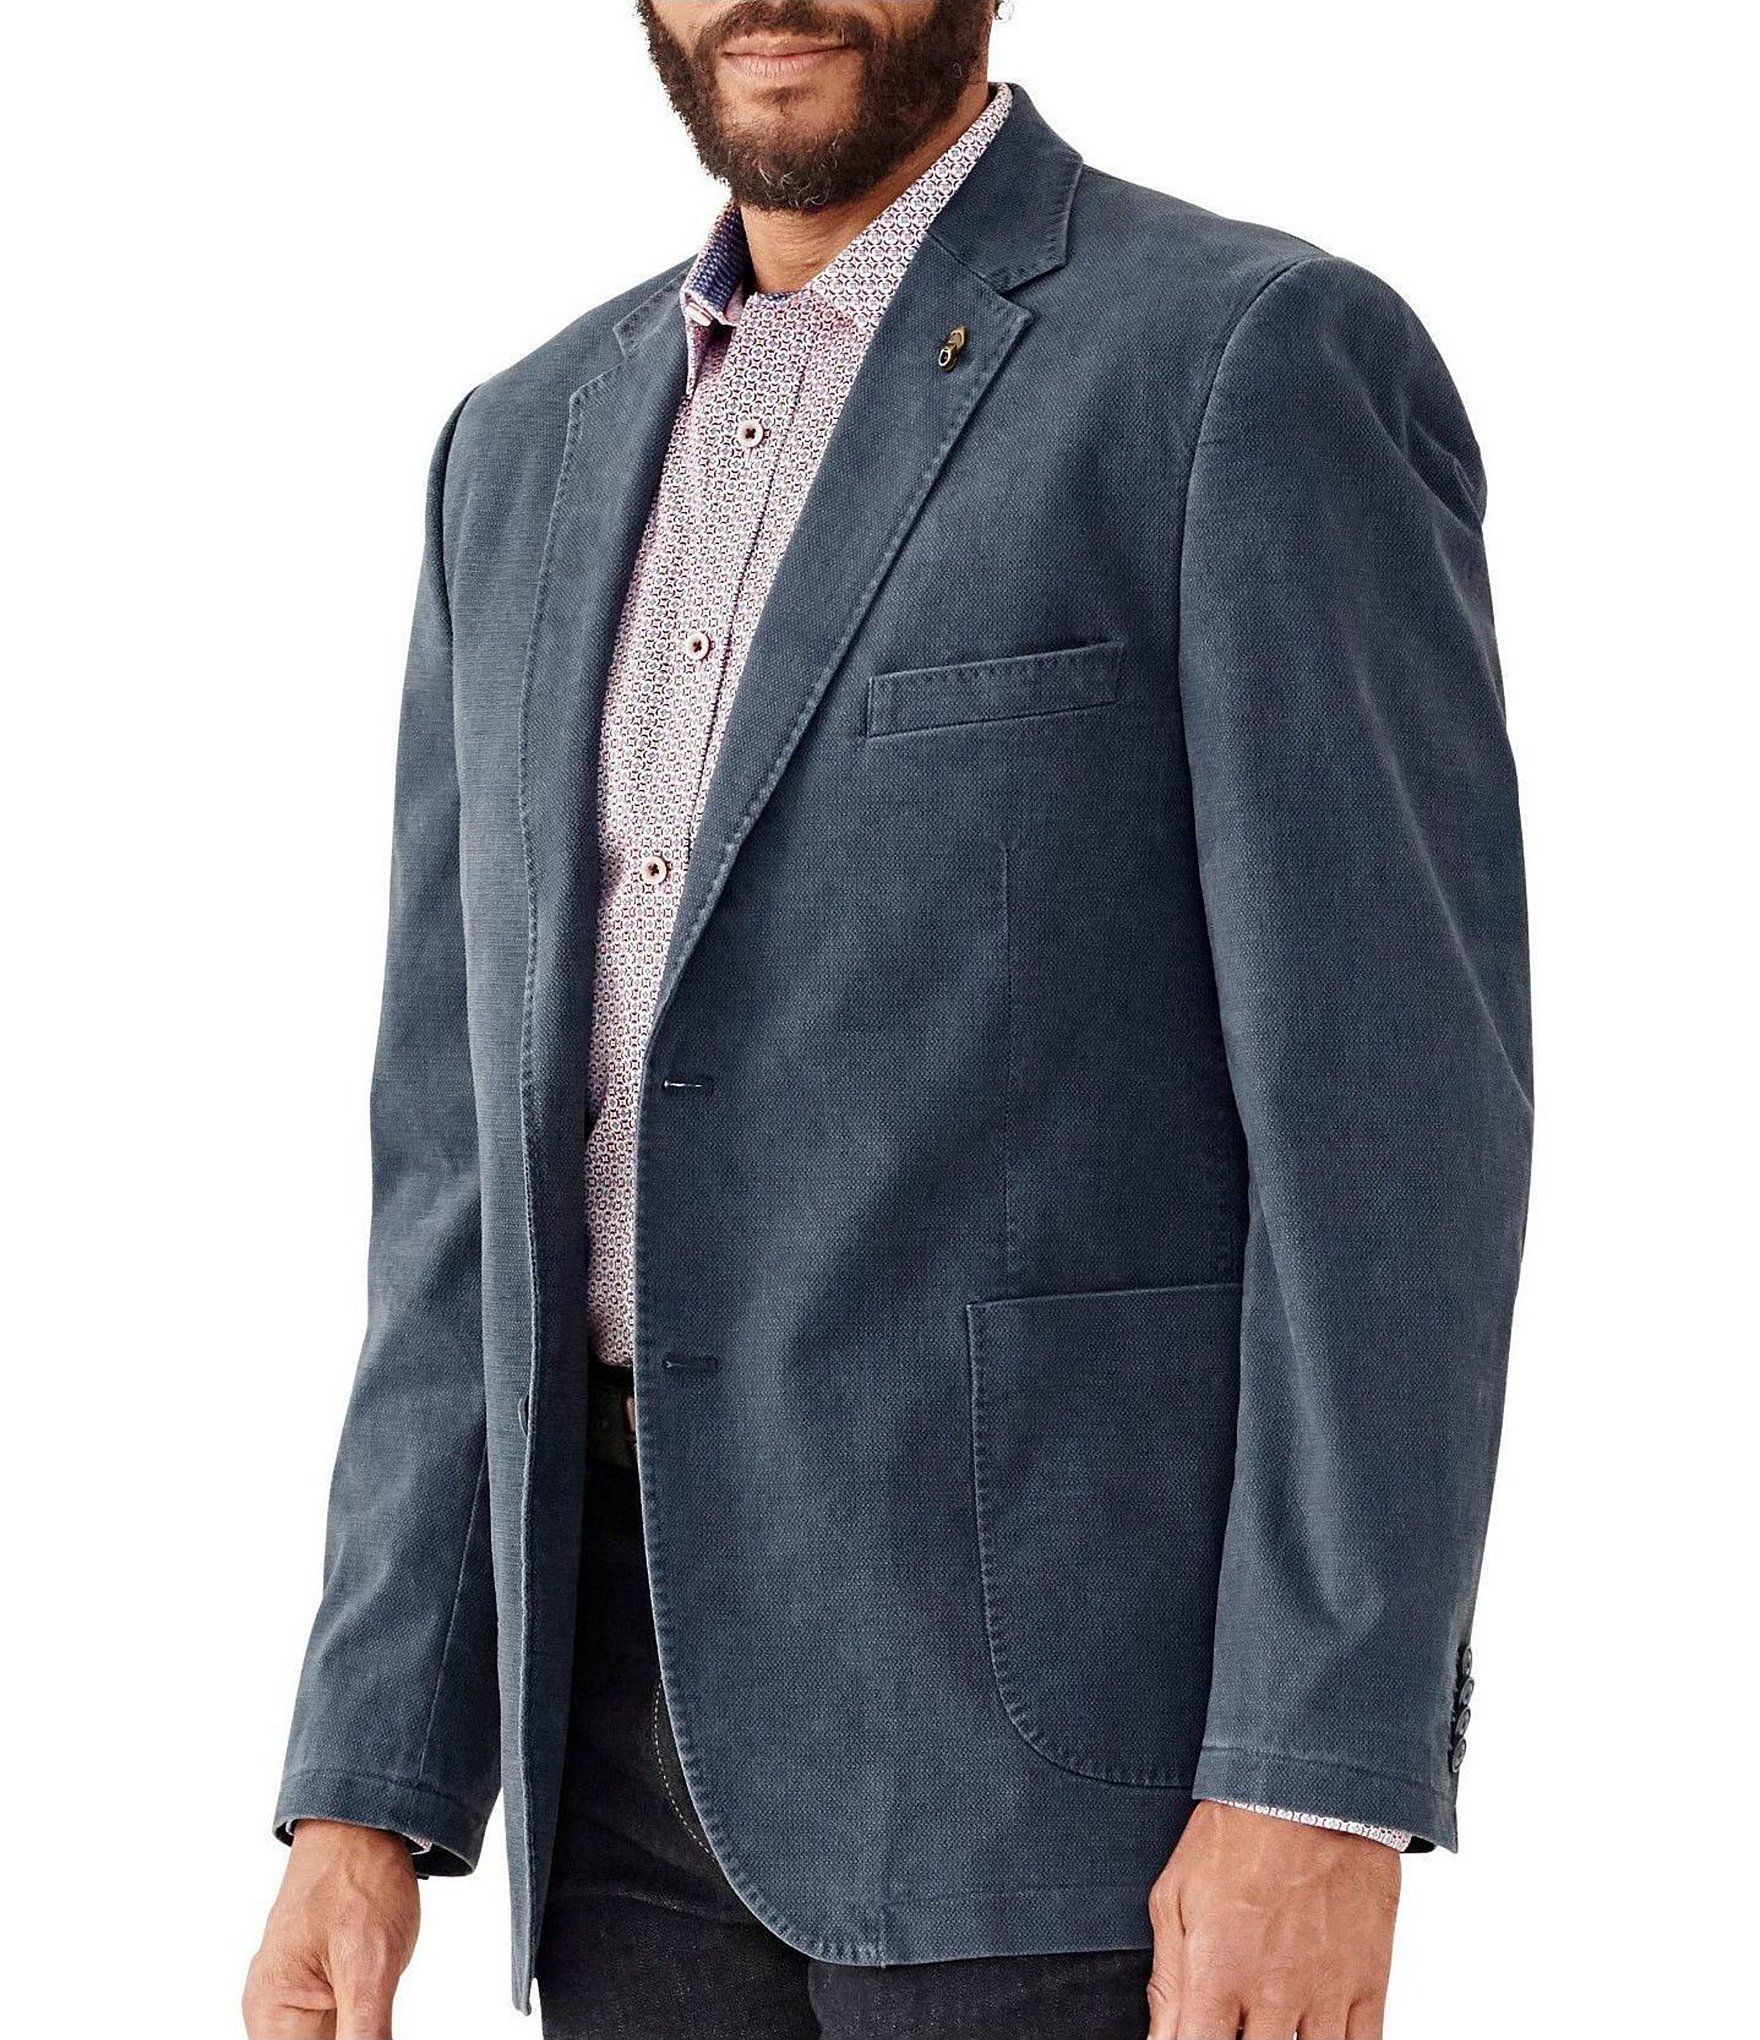 Johnston & Murphy Classic Fit Washed Printed Stretch Blazer | Dillard's